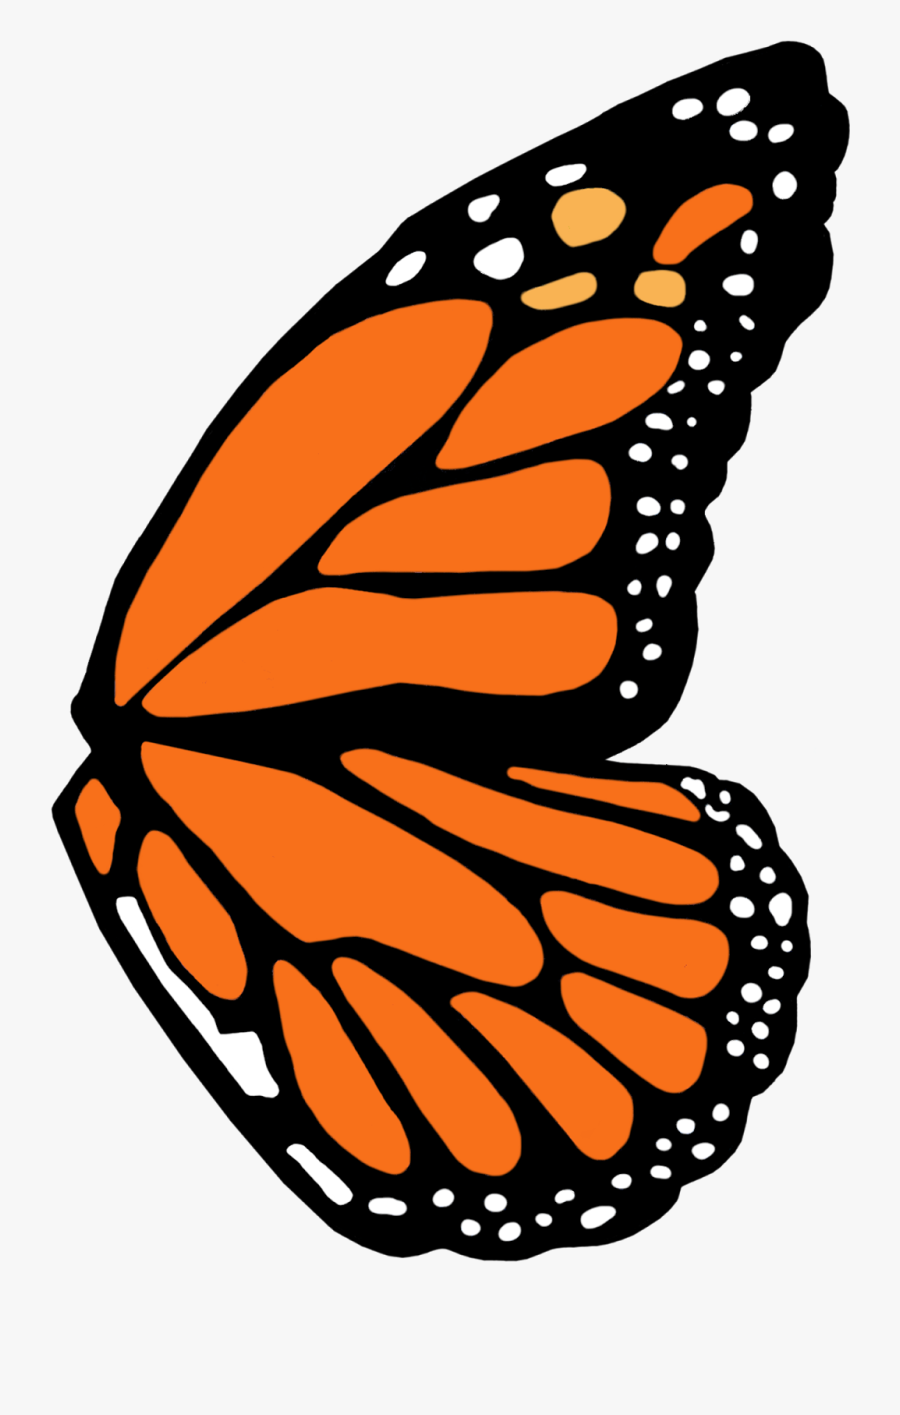 Transparent Tinkerbell Wings Png - Monarch Butterfly Wing Template, Transparent Clipart